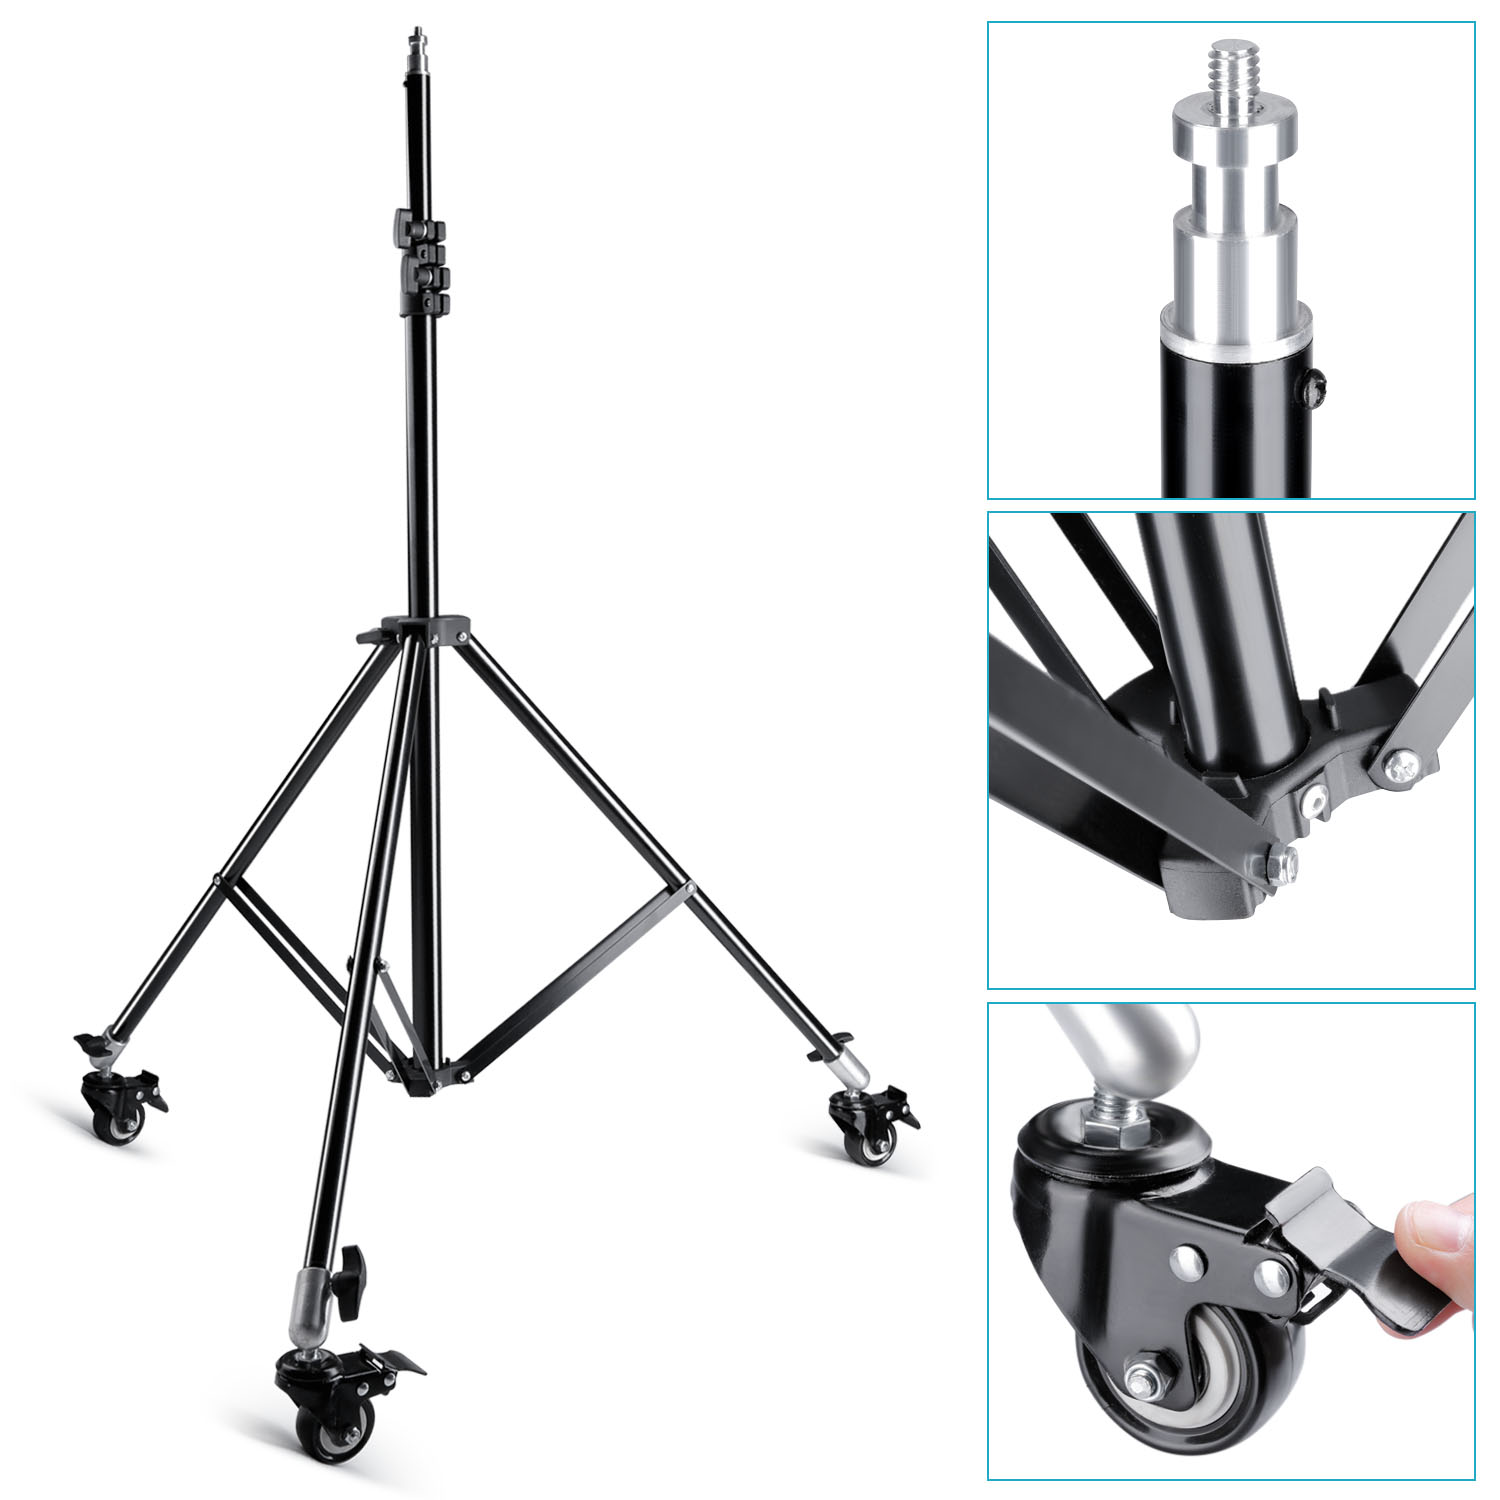 Neewer Photo Studio Light Stand W/ Caster Wheels F Video